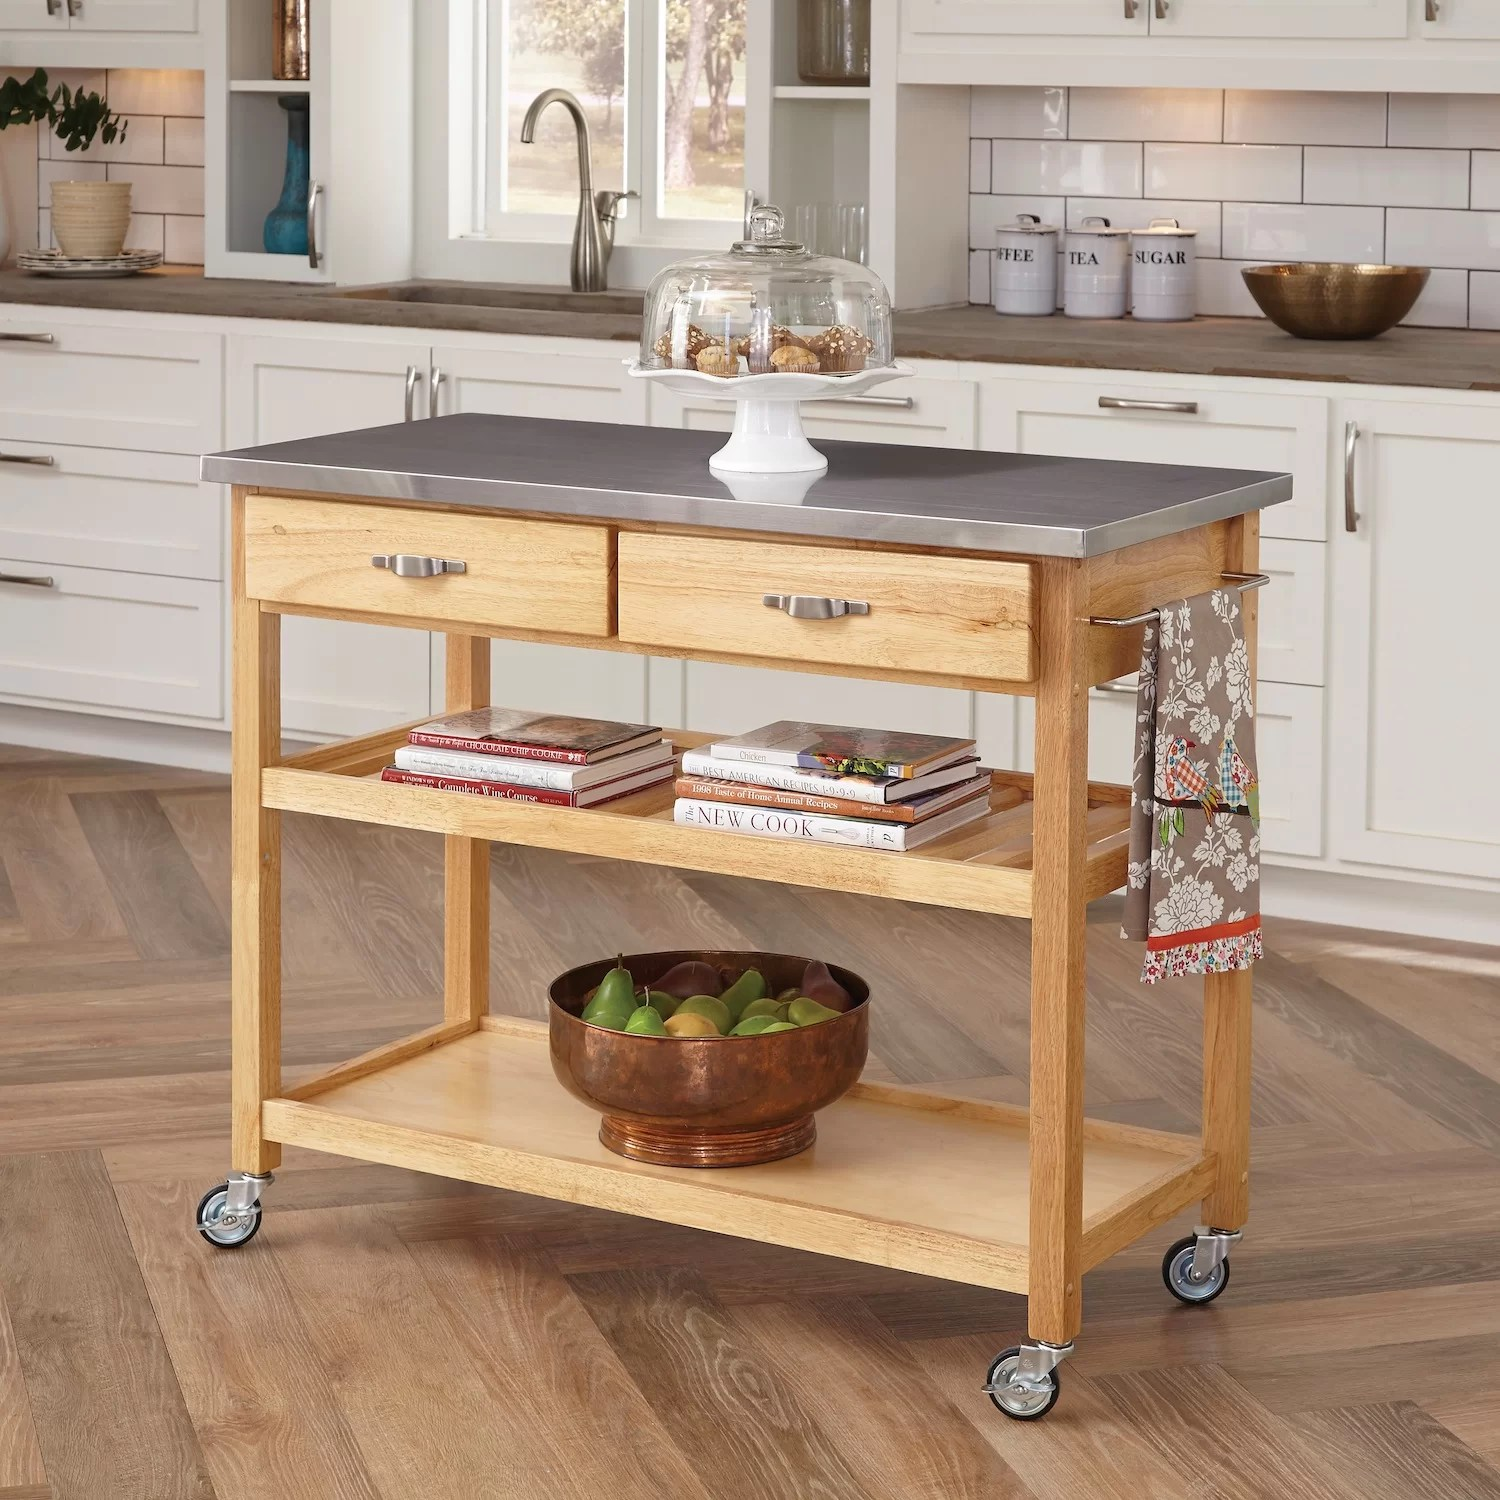 home styles kitchen island stainless steel top reviews furniture cambridge stainless steel top kitchen island white